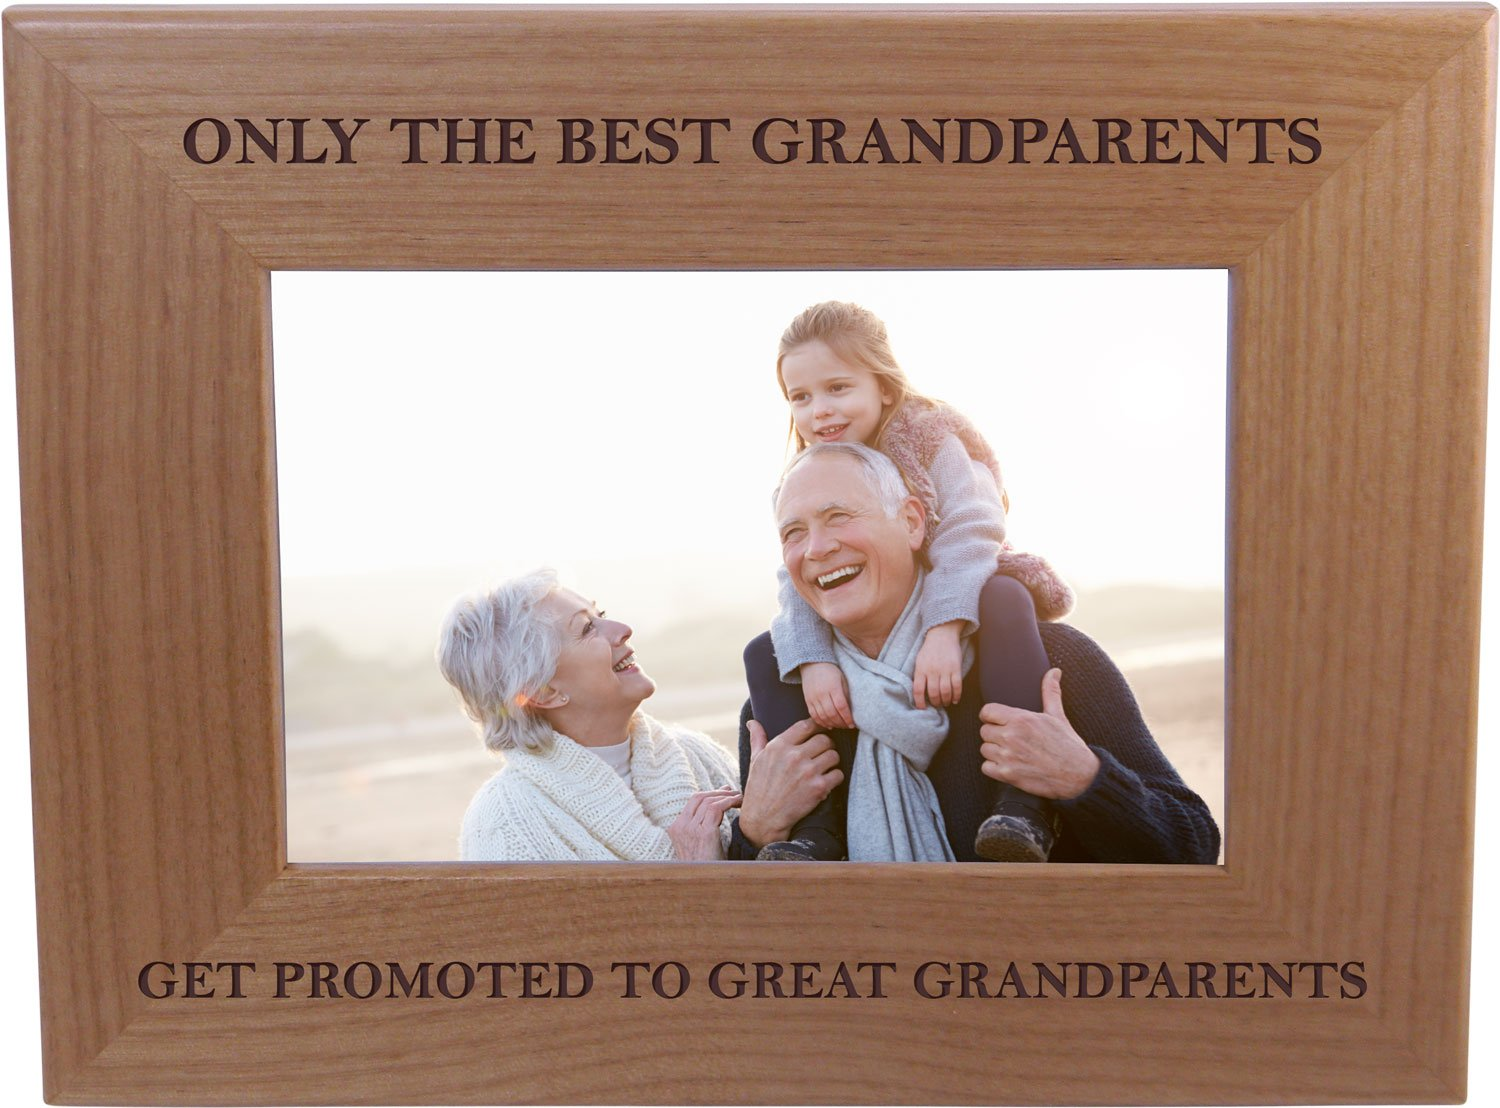 ukgiftstoreonline New Baby Pregnancy Scan Wooden Photo Frame Grandparents Gift 4 x 6 Inch